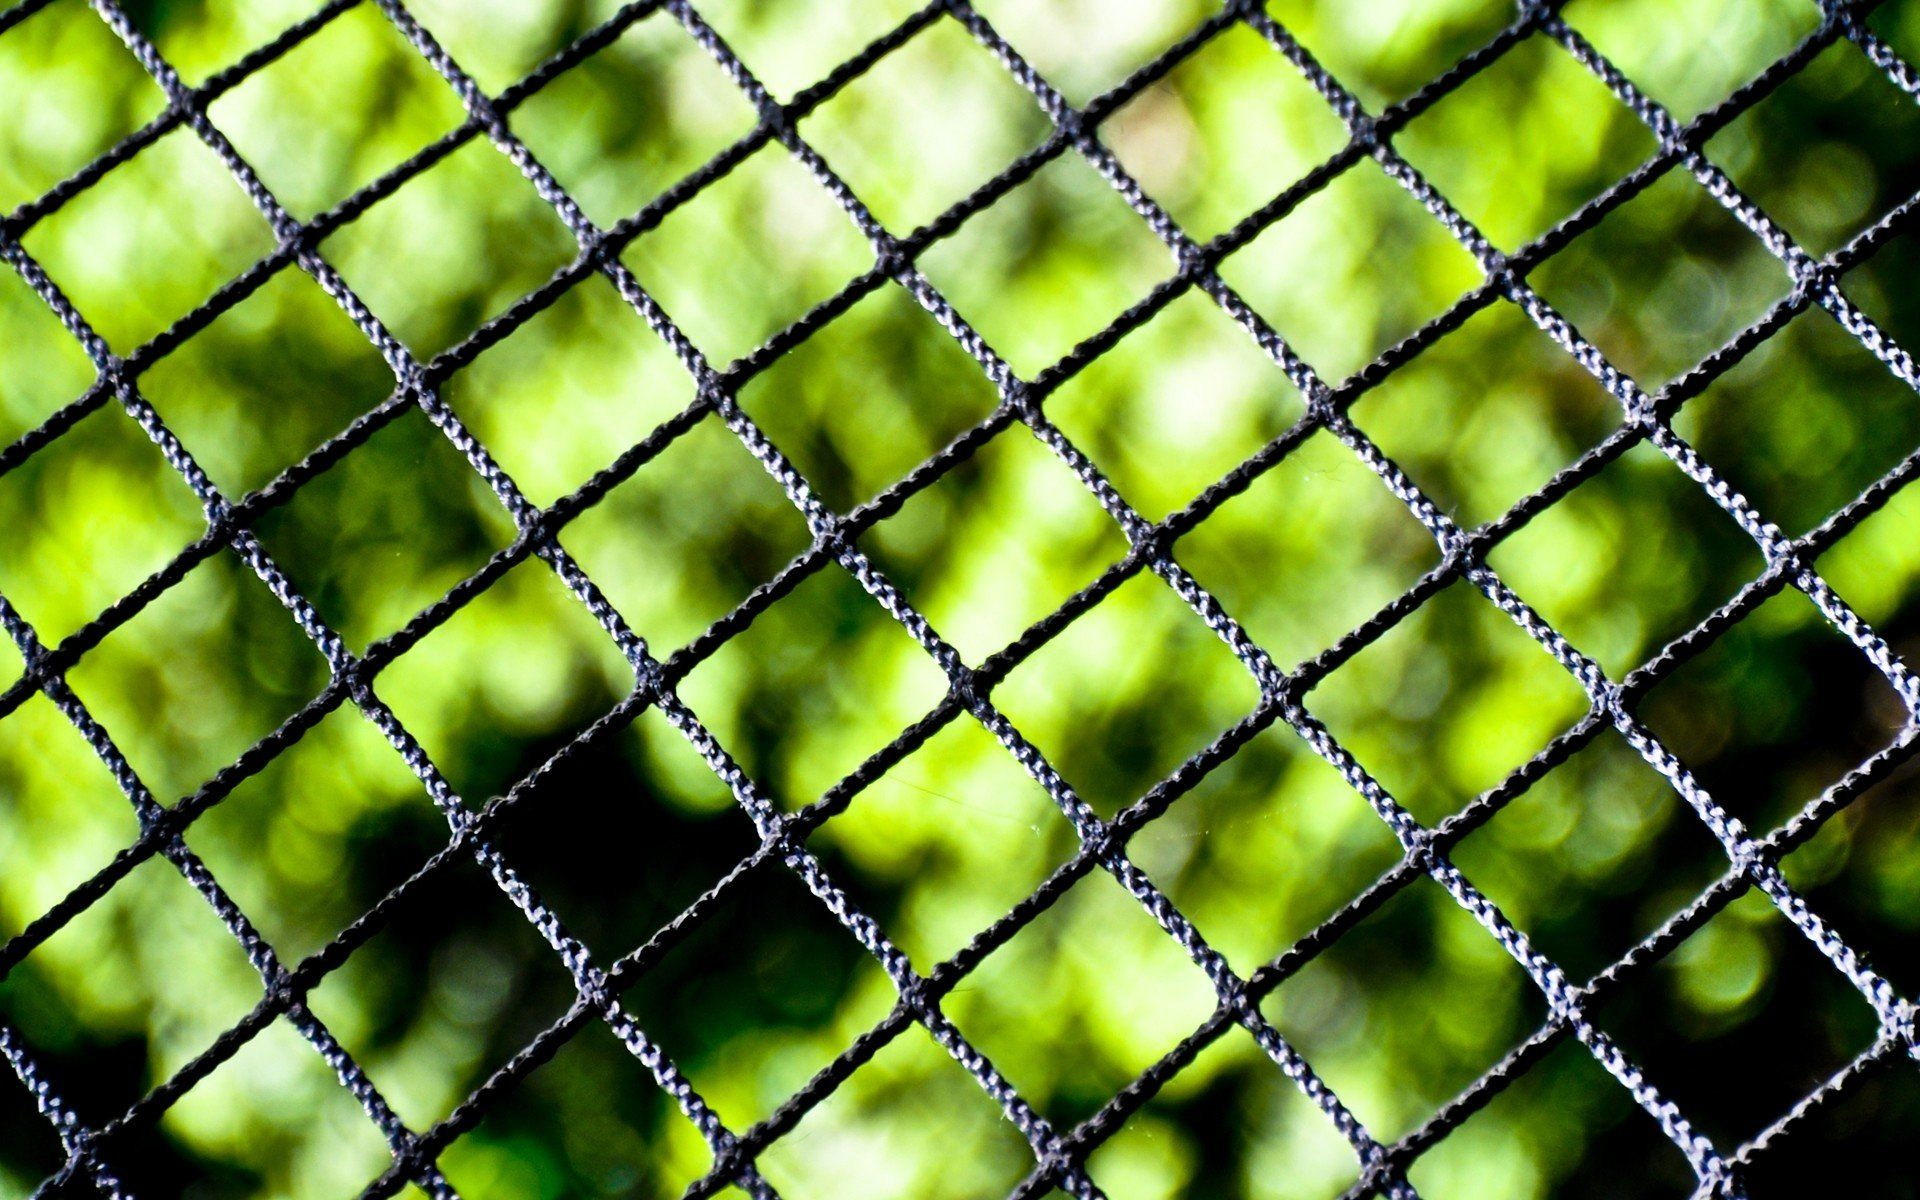 Samsung Blurred High Definiton Fencesfree Background Images Linkcloseup Backgroun Blur Background Photography Blurred Background Photography Blurred Background